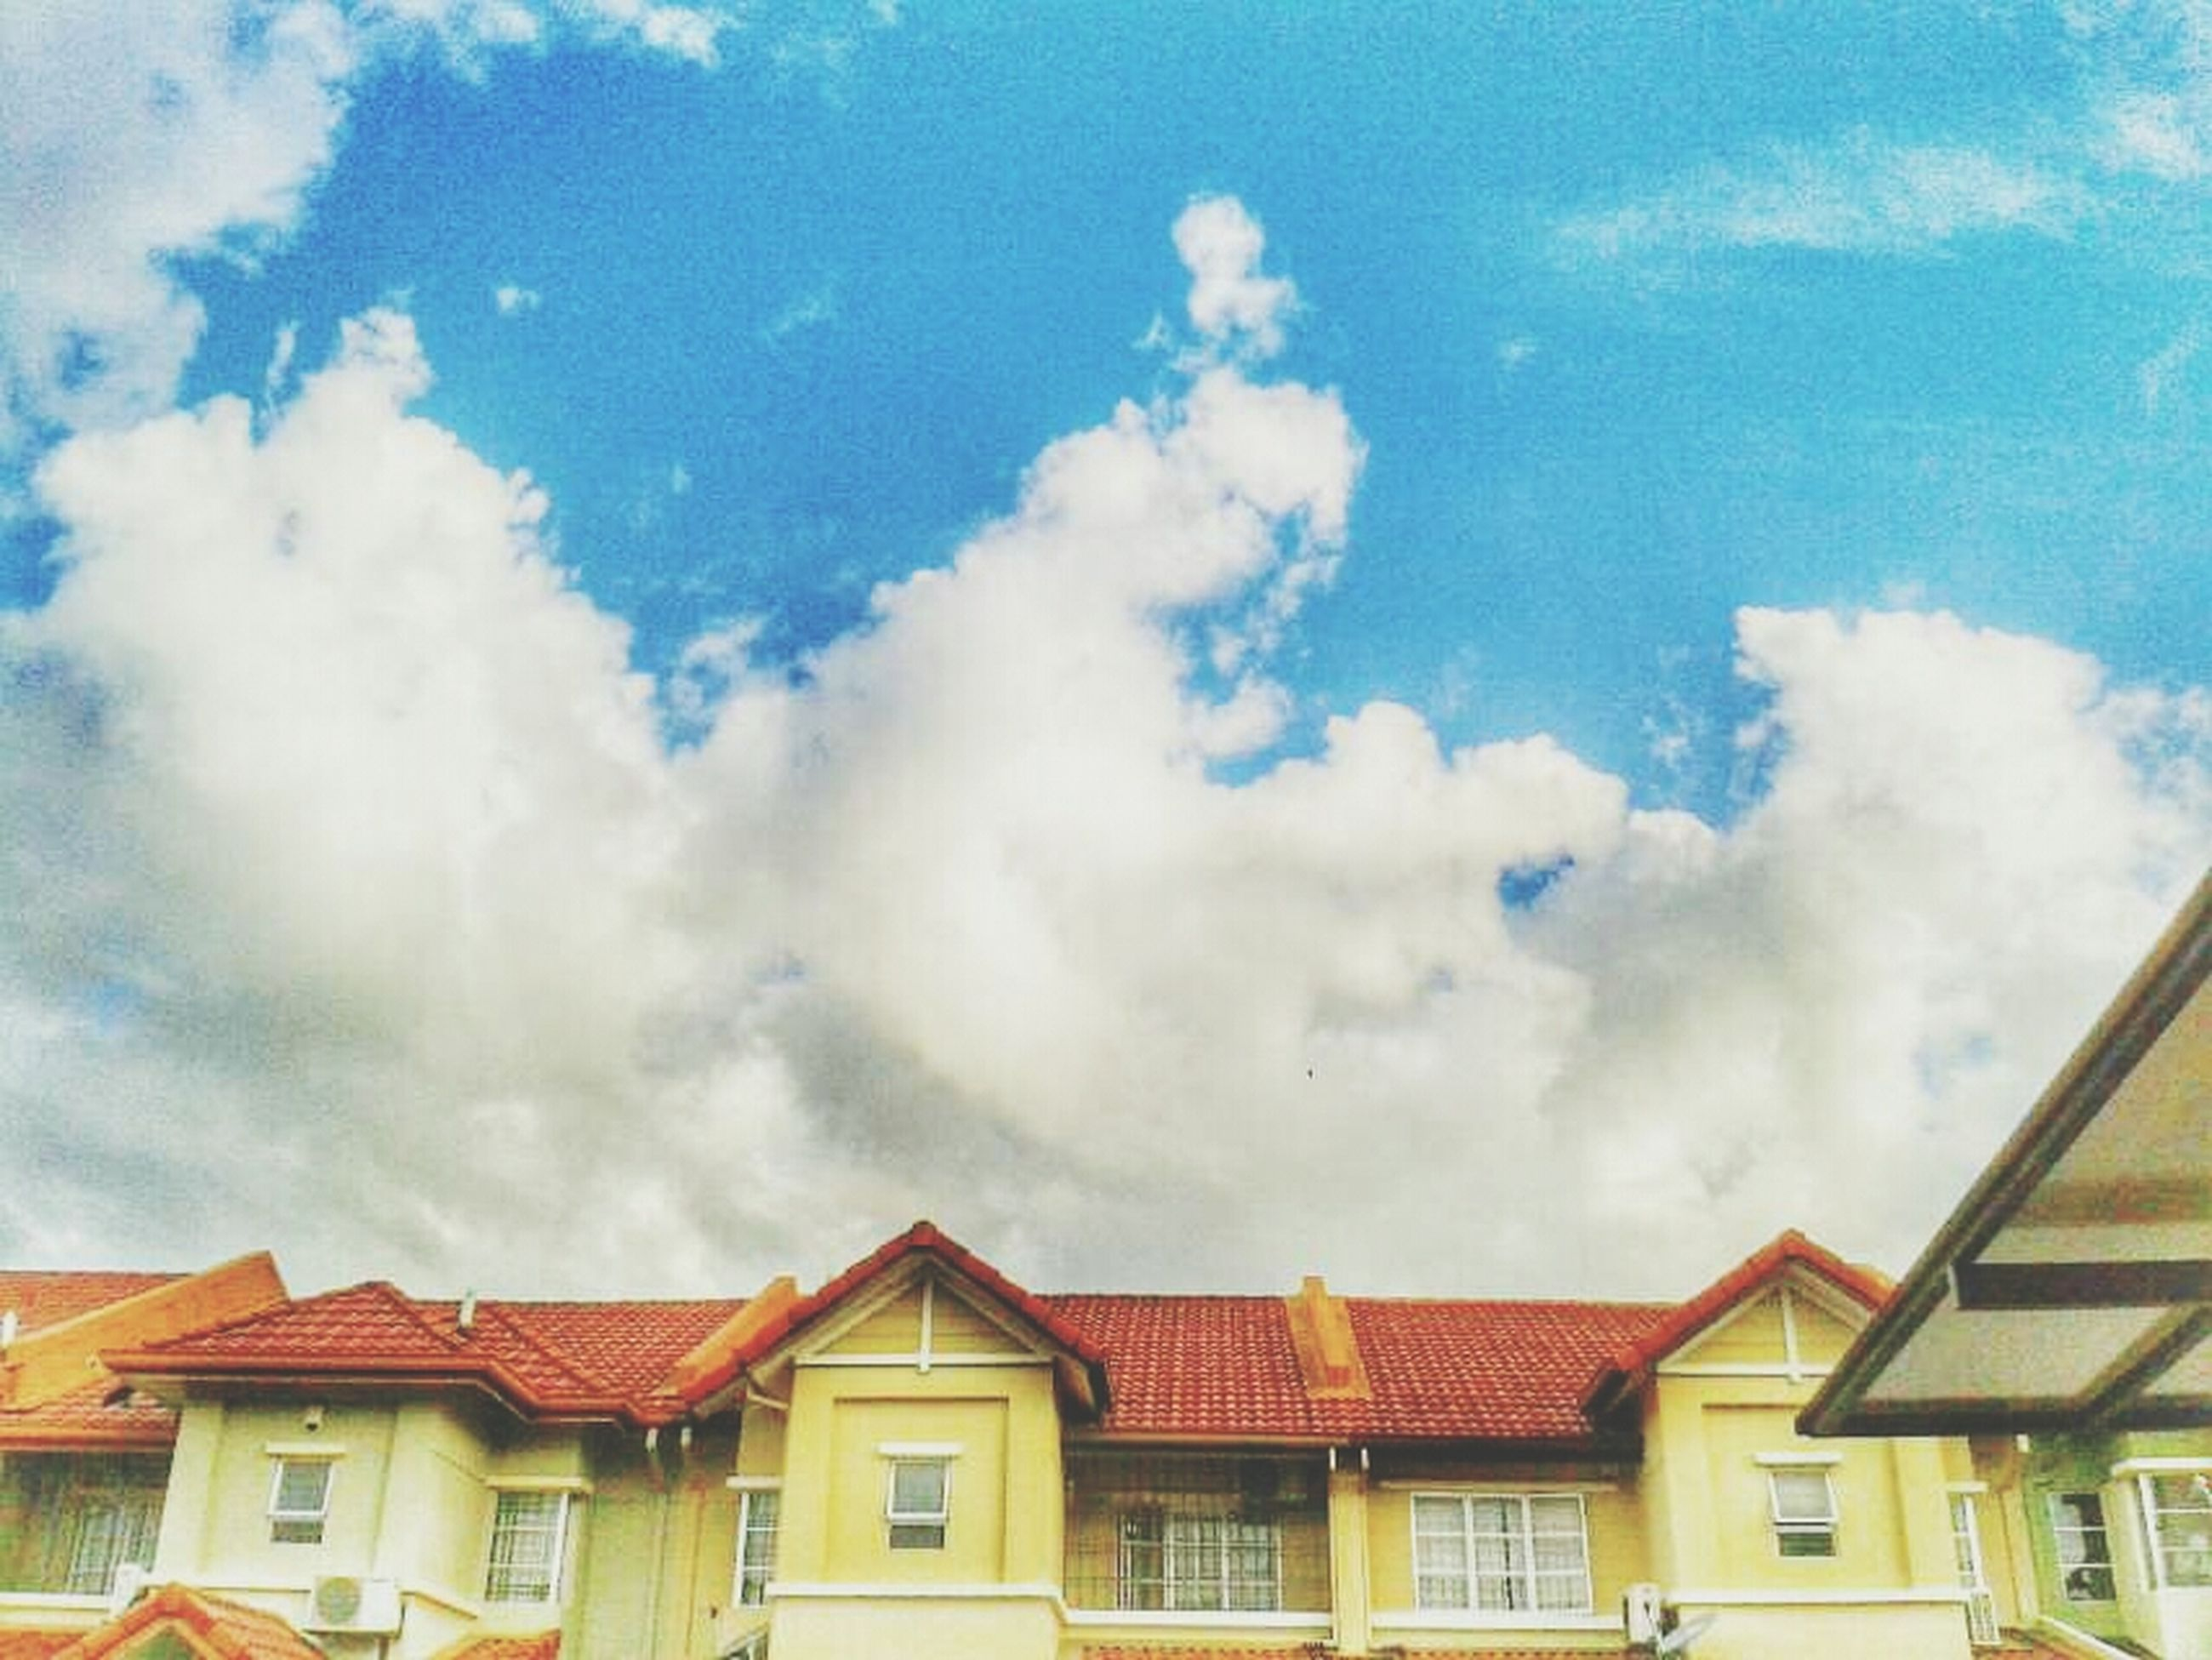 building exterior, architecture, built structure, sky, cloud - sky, house, low angle view, residential structure, cloudy, residential building, roof, window, cloud, high section, day, building, outdoors, blue, weather, no people